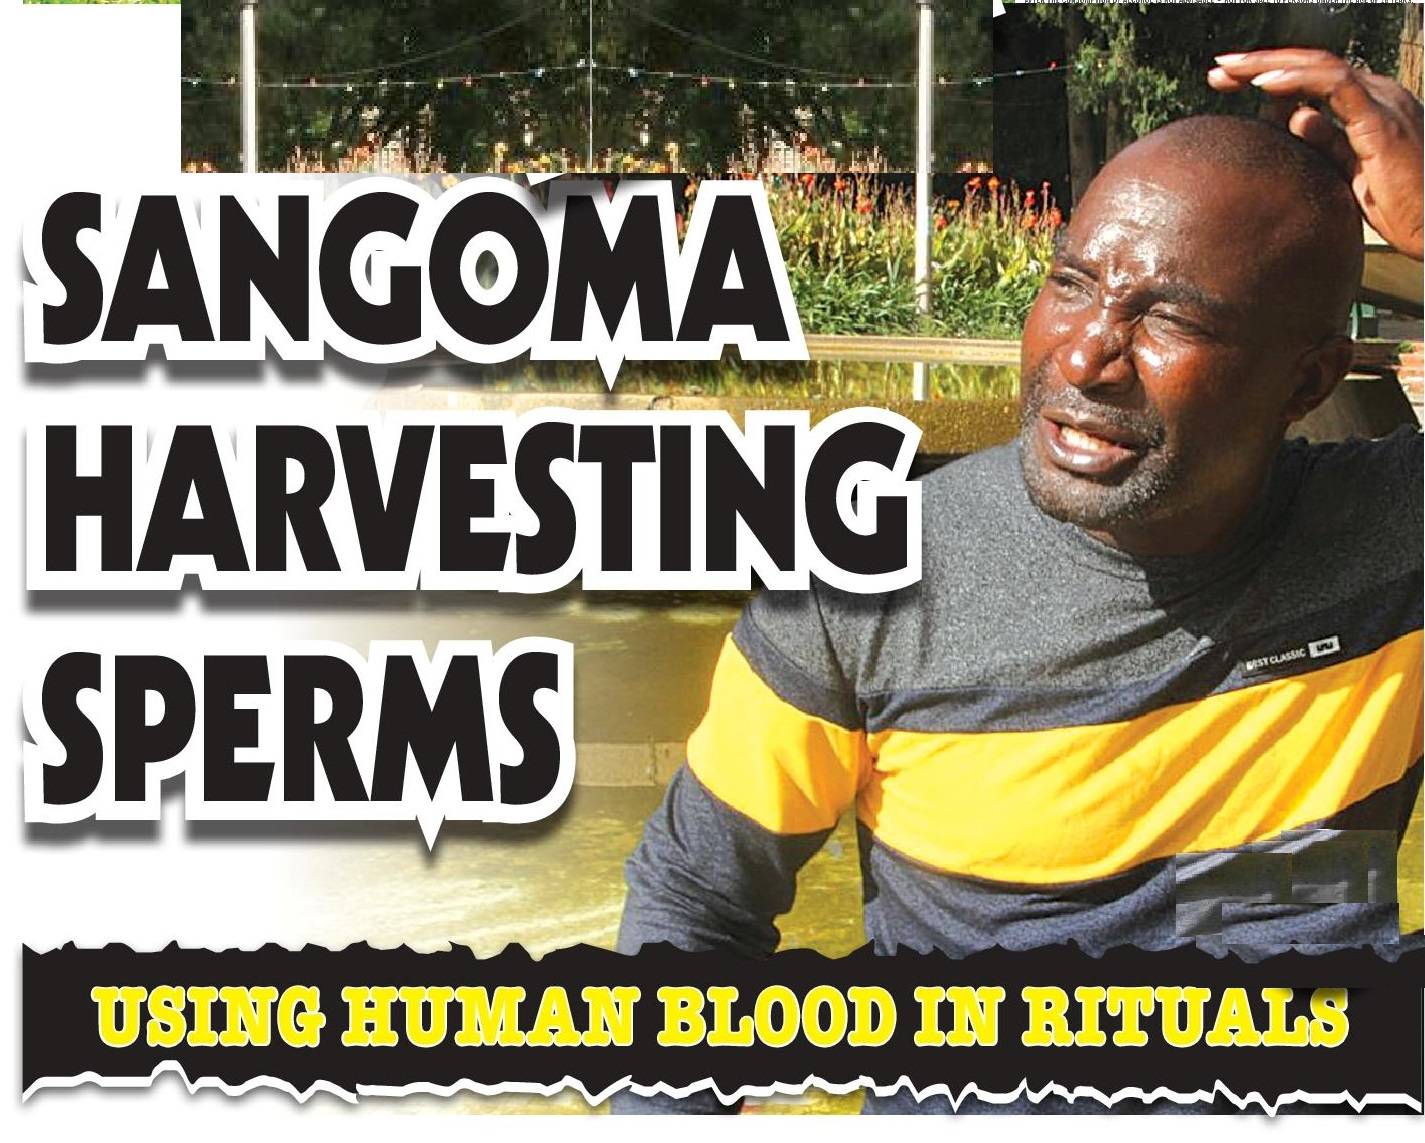 Sangoma Harvesting Sperms...Clients Know When They Will Die!